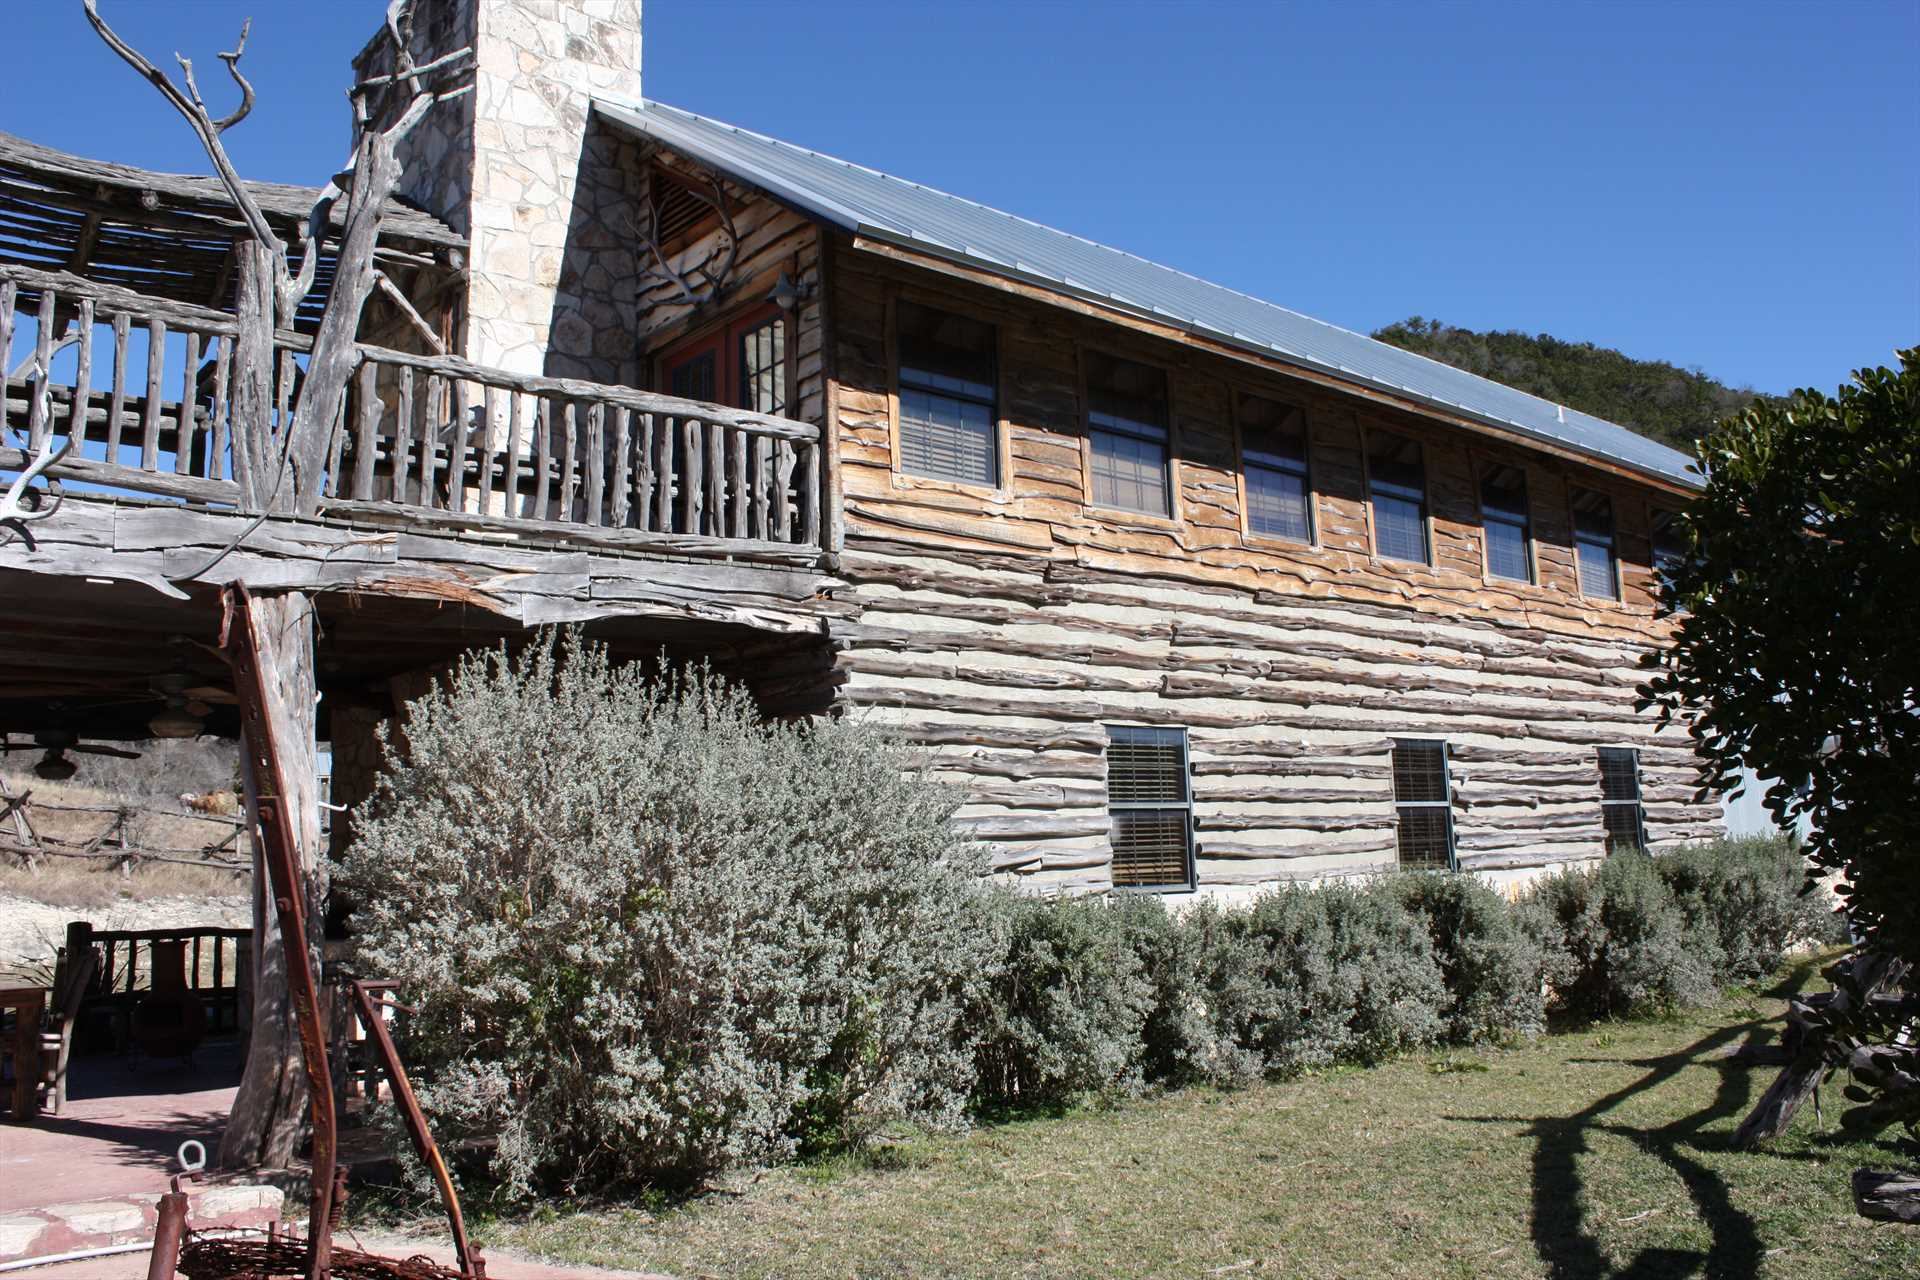 Imagine your crew having this massive, beautiful Hill Country lodge all to yourselves!